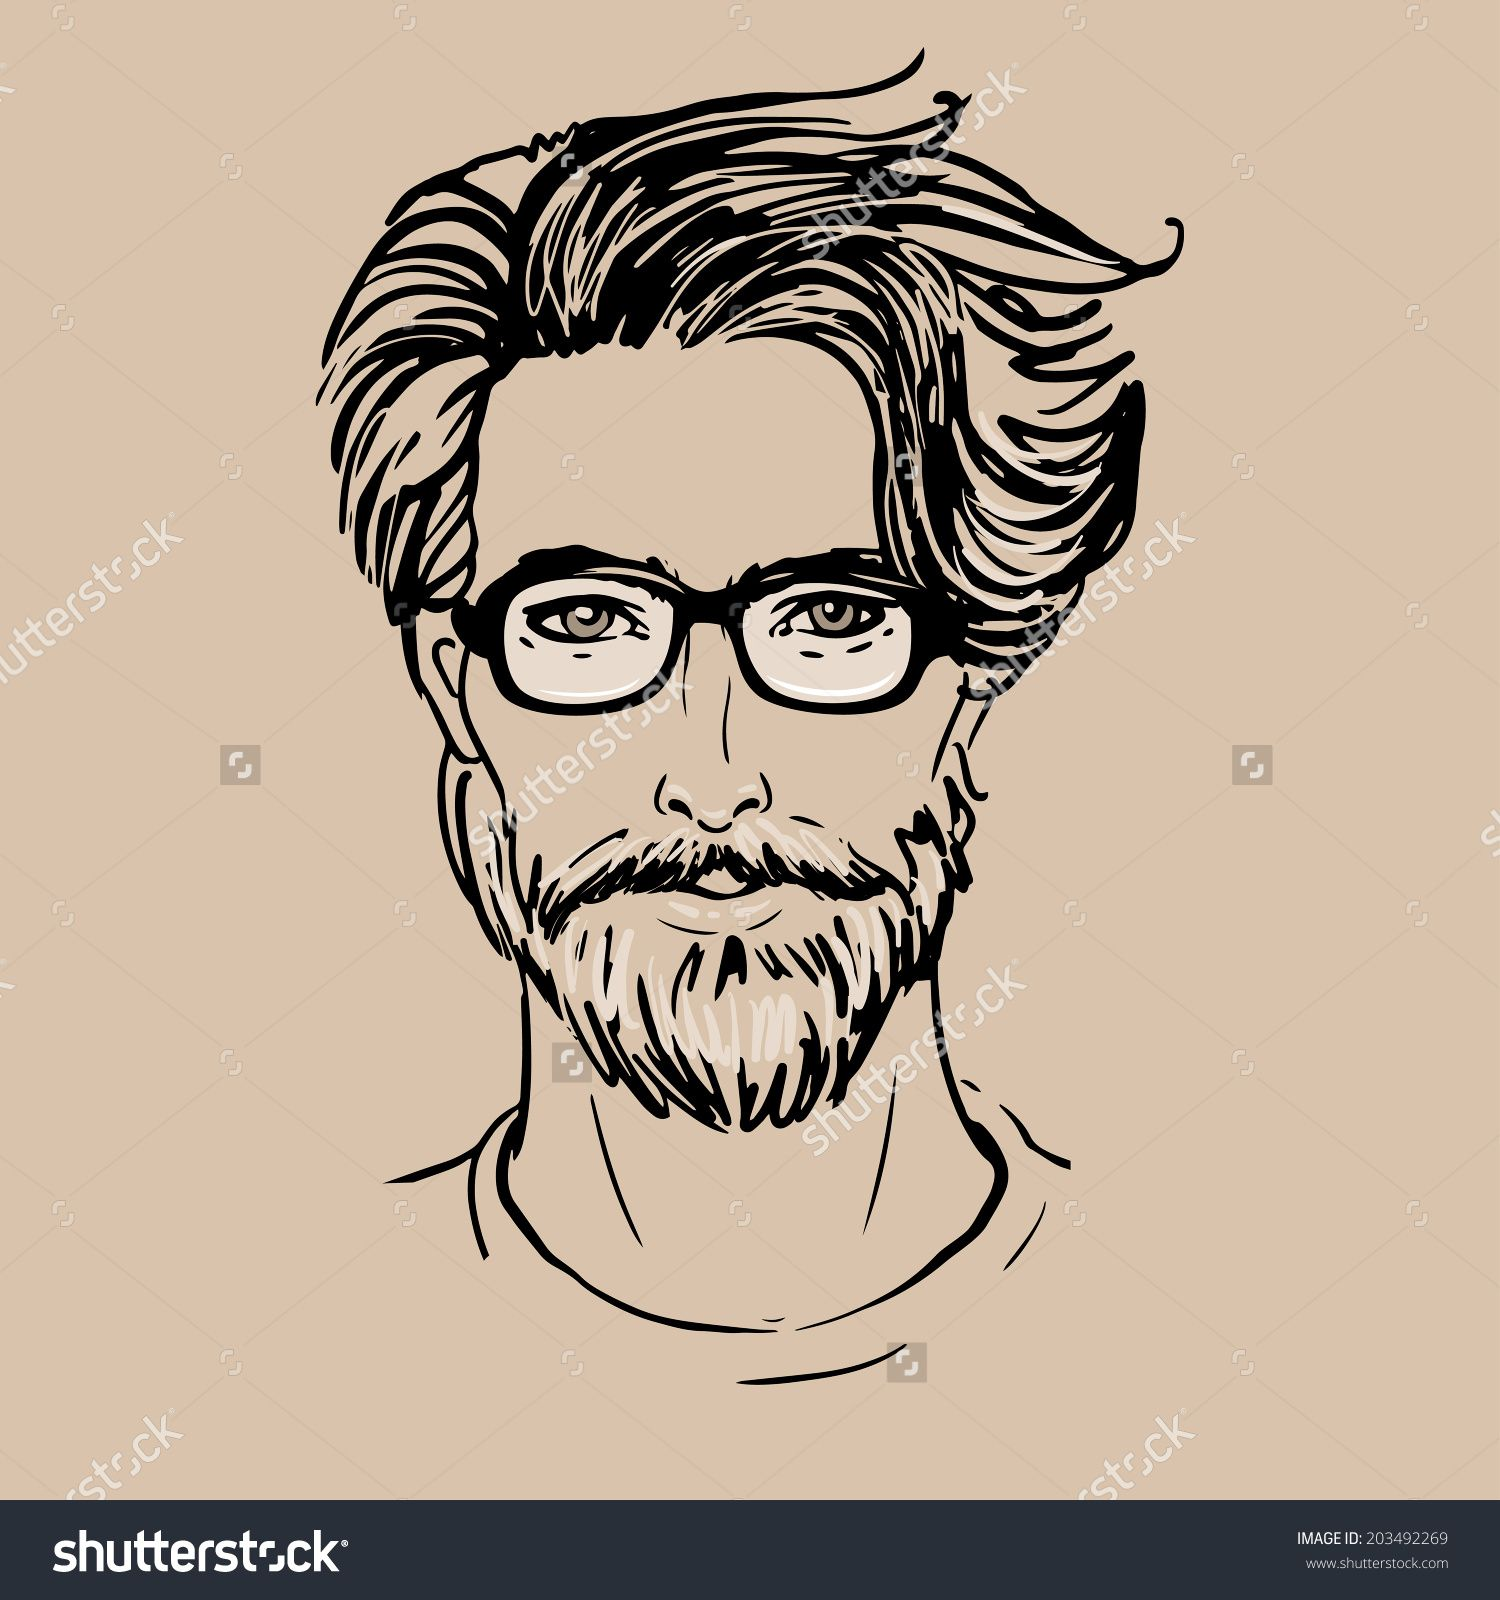 Hipster. Vector of a man face with beard and glasses